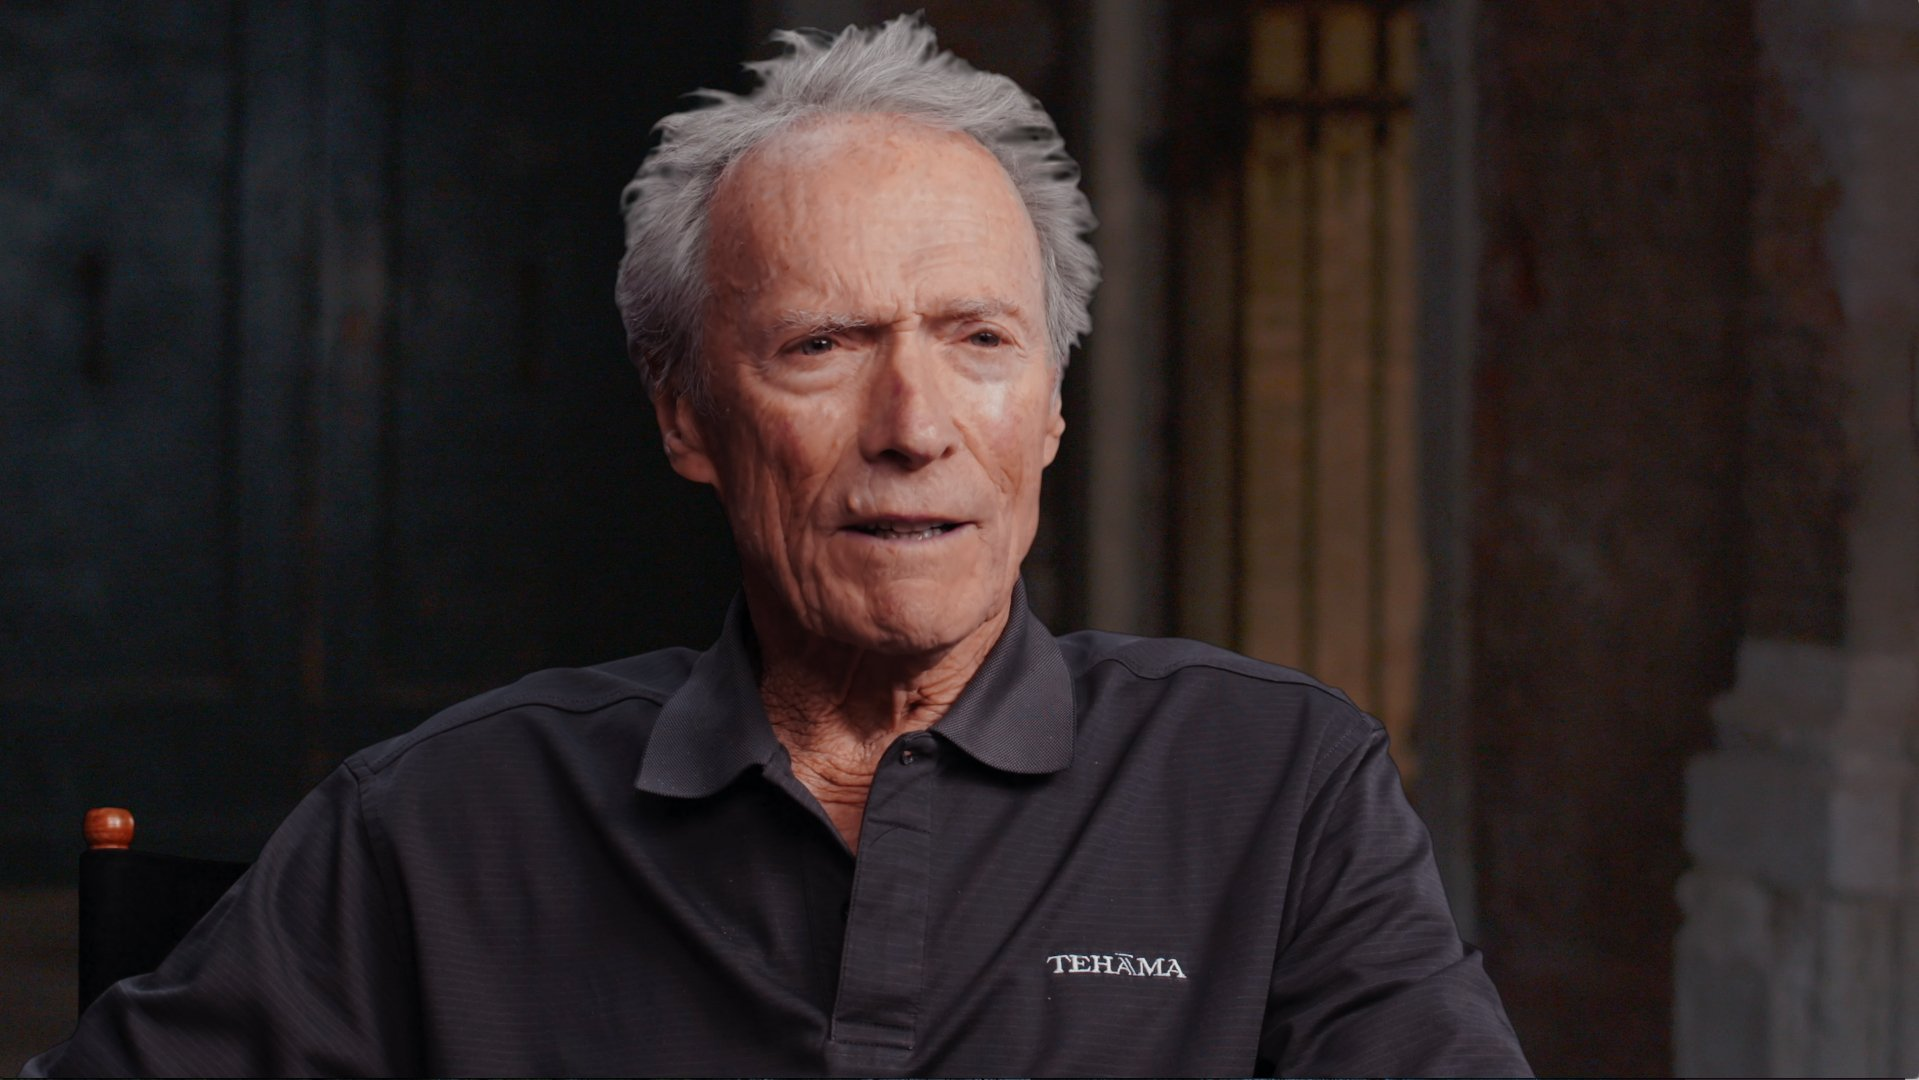 RT @1517toParis: Go behind the scenes of The 15:17 to Paris with director Clint Eastwood. #1517toParis https://t.co/VS6COgp2Ul